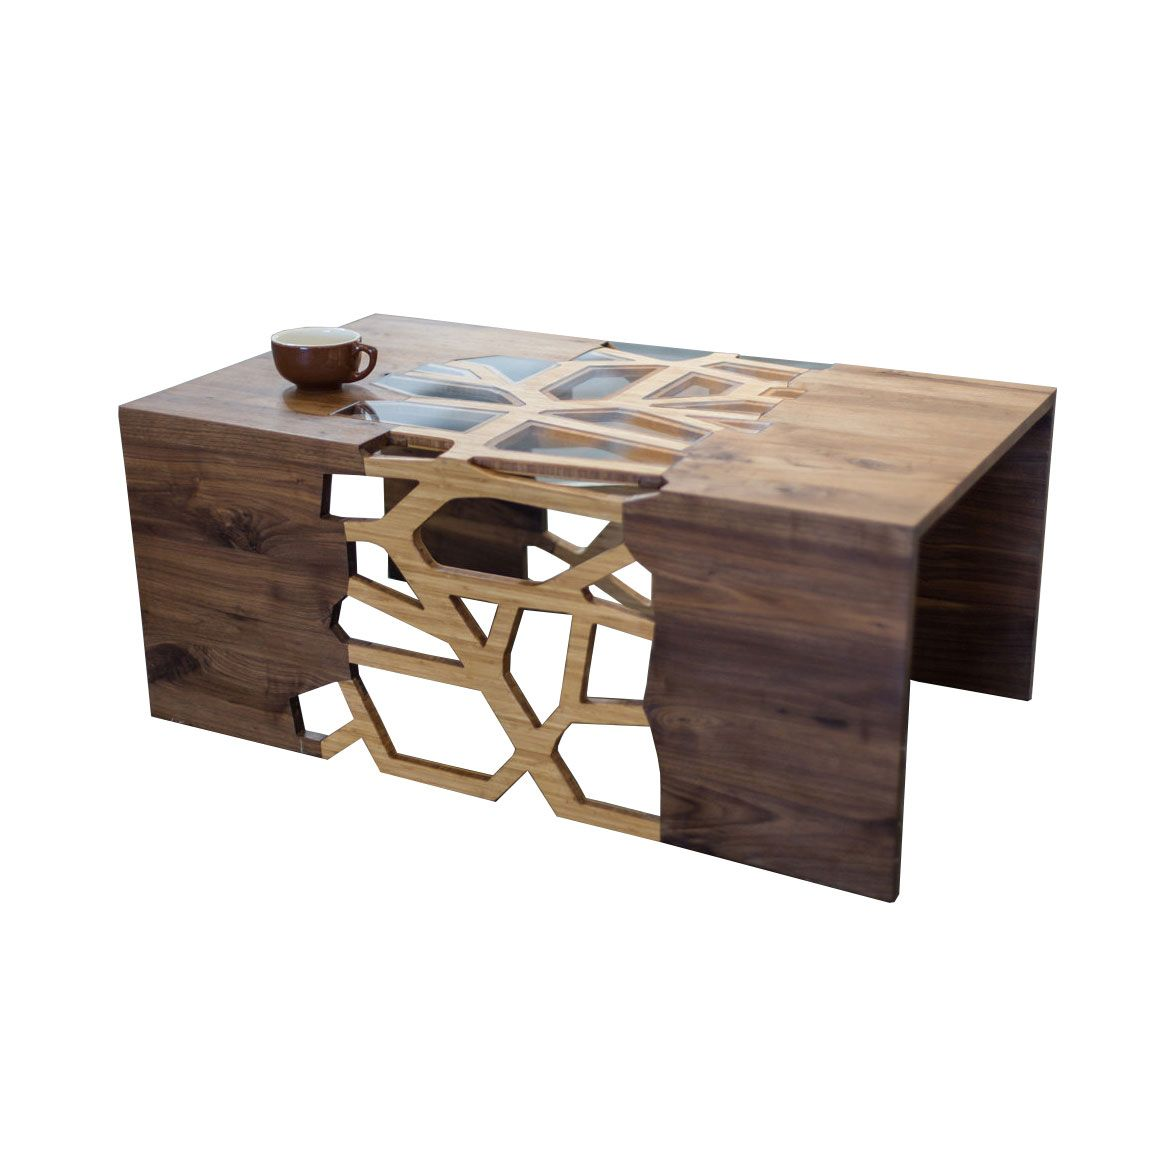 Colorful Modern Coffee Table: Handmade Organic Wood Mosaic Coffee Table